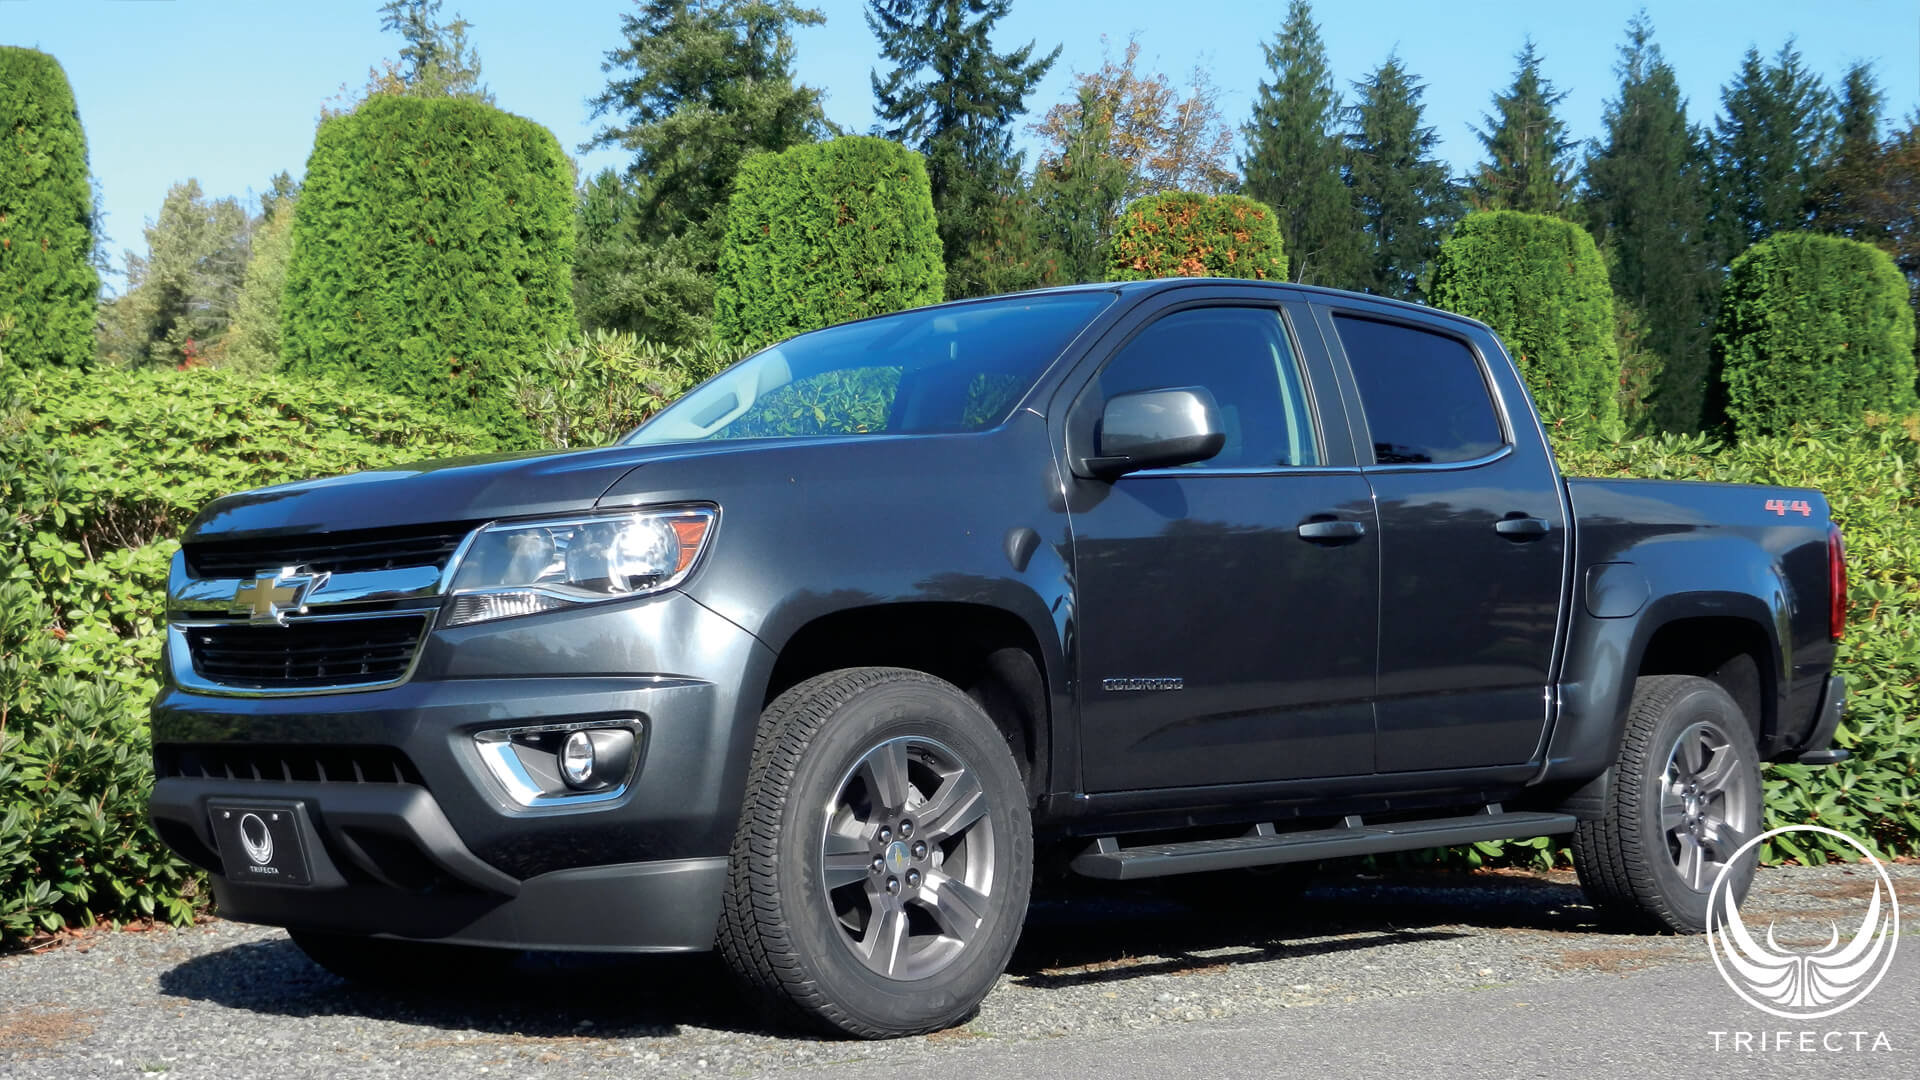 Product Review: 2015--2016 Chevrolet Colorado - 3.6L - Advantage